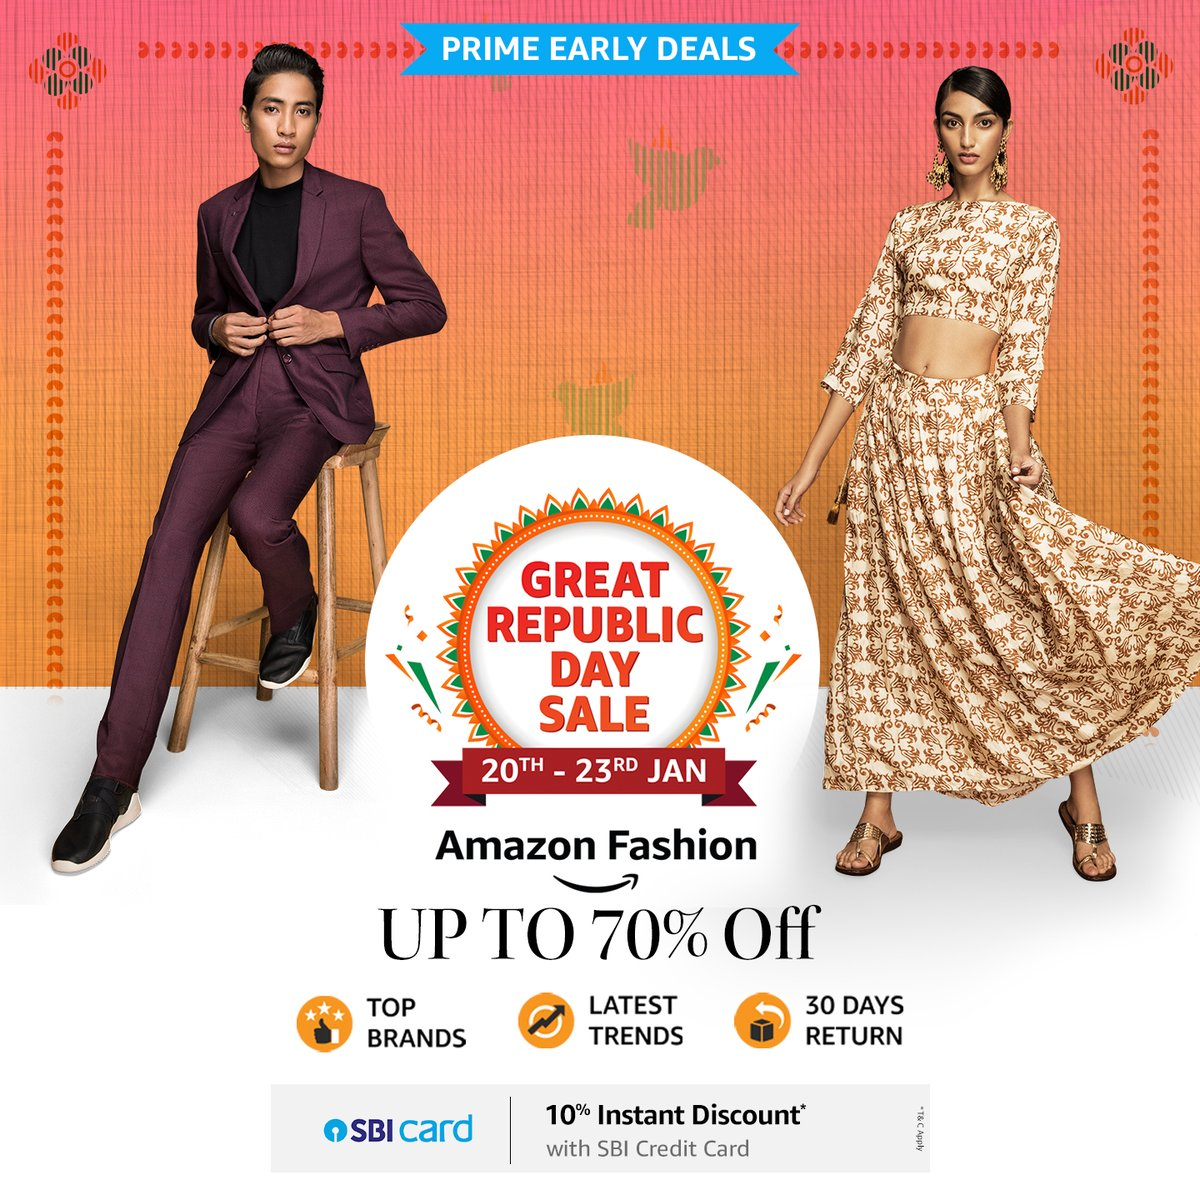 Are you a #PrimeMember? Well, good news... you can now access prime early deals at the #AmazonGreatRepublicDaySale! So hurry & start shopping:  . . #AmazonPrime #PrimeEarlyAccess #NewBeginningBigSavings #Sale #AmazonFashion #AmazonBeauty #HarPalFashionable